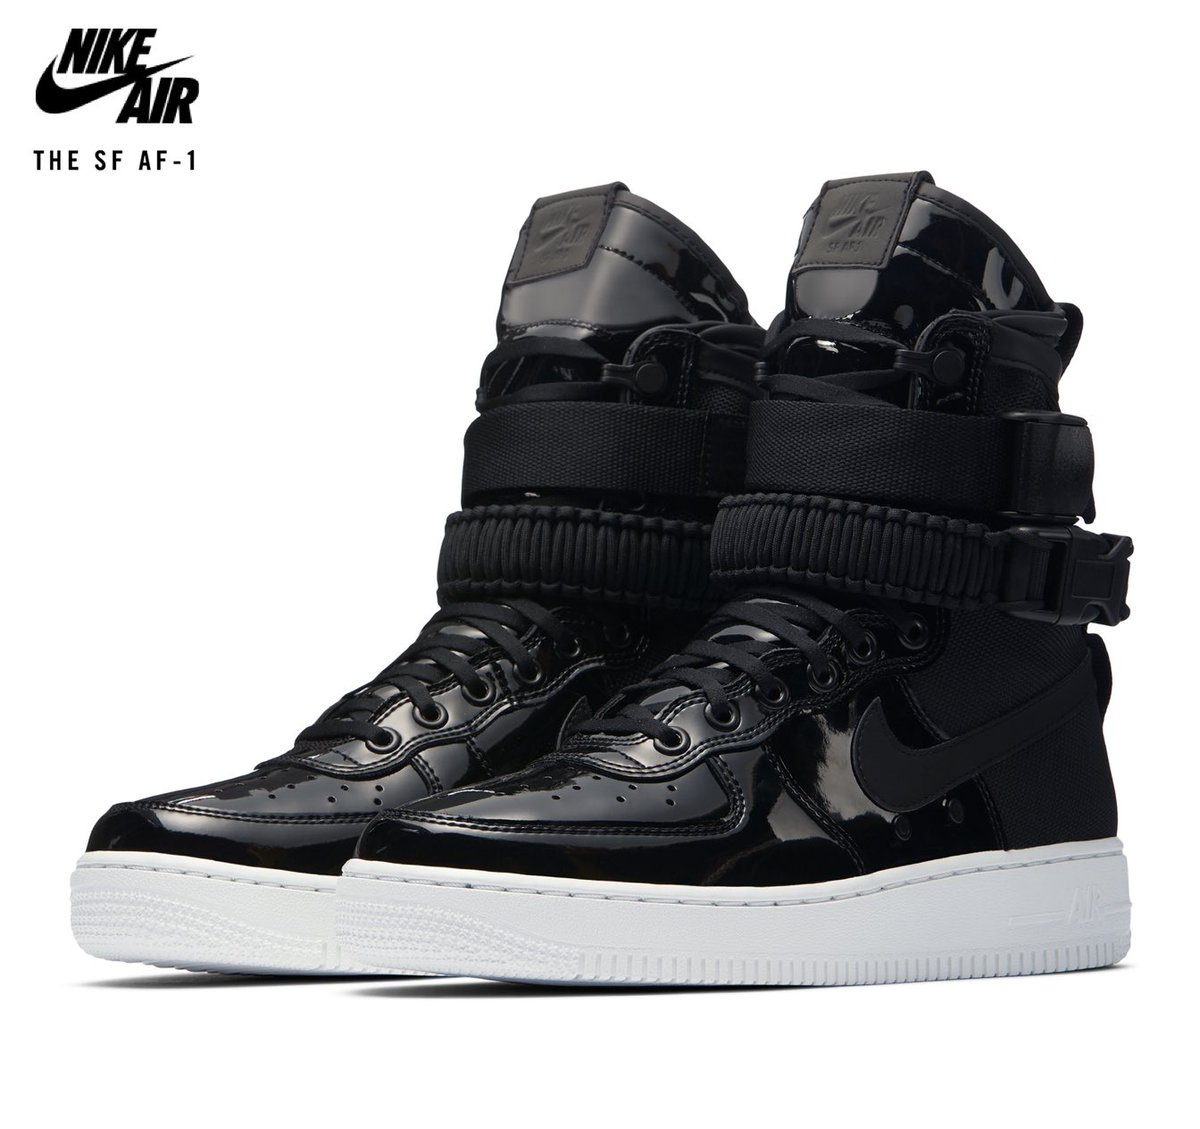 Foot Locker Canada On Twitter The Nike Sf Air Force 1 High Se The Nike Air Force 1 07 Se Arrives In Select Stores Today Will Arrive Online Soon Stay Tuned